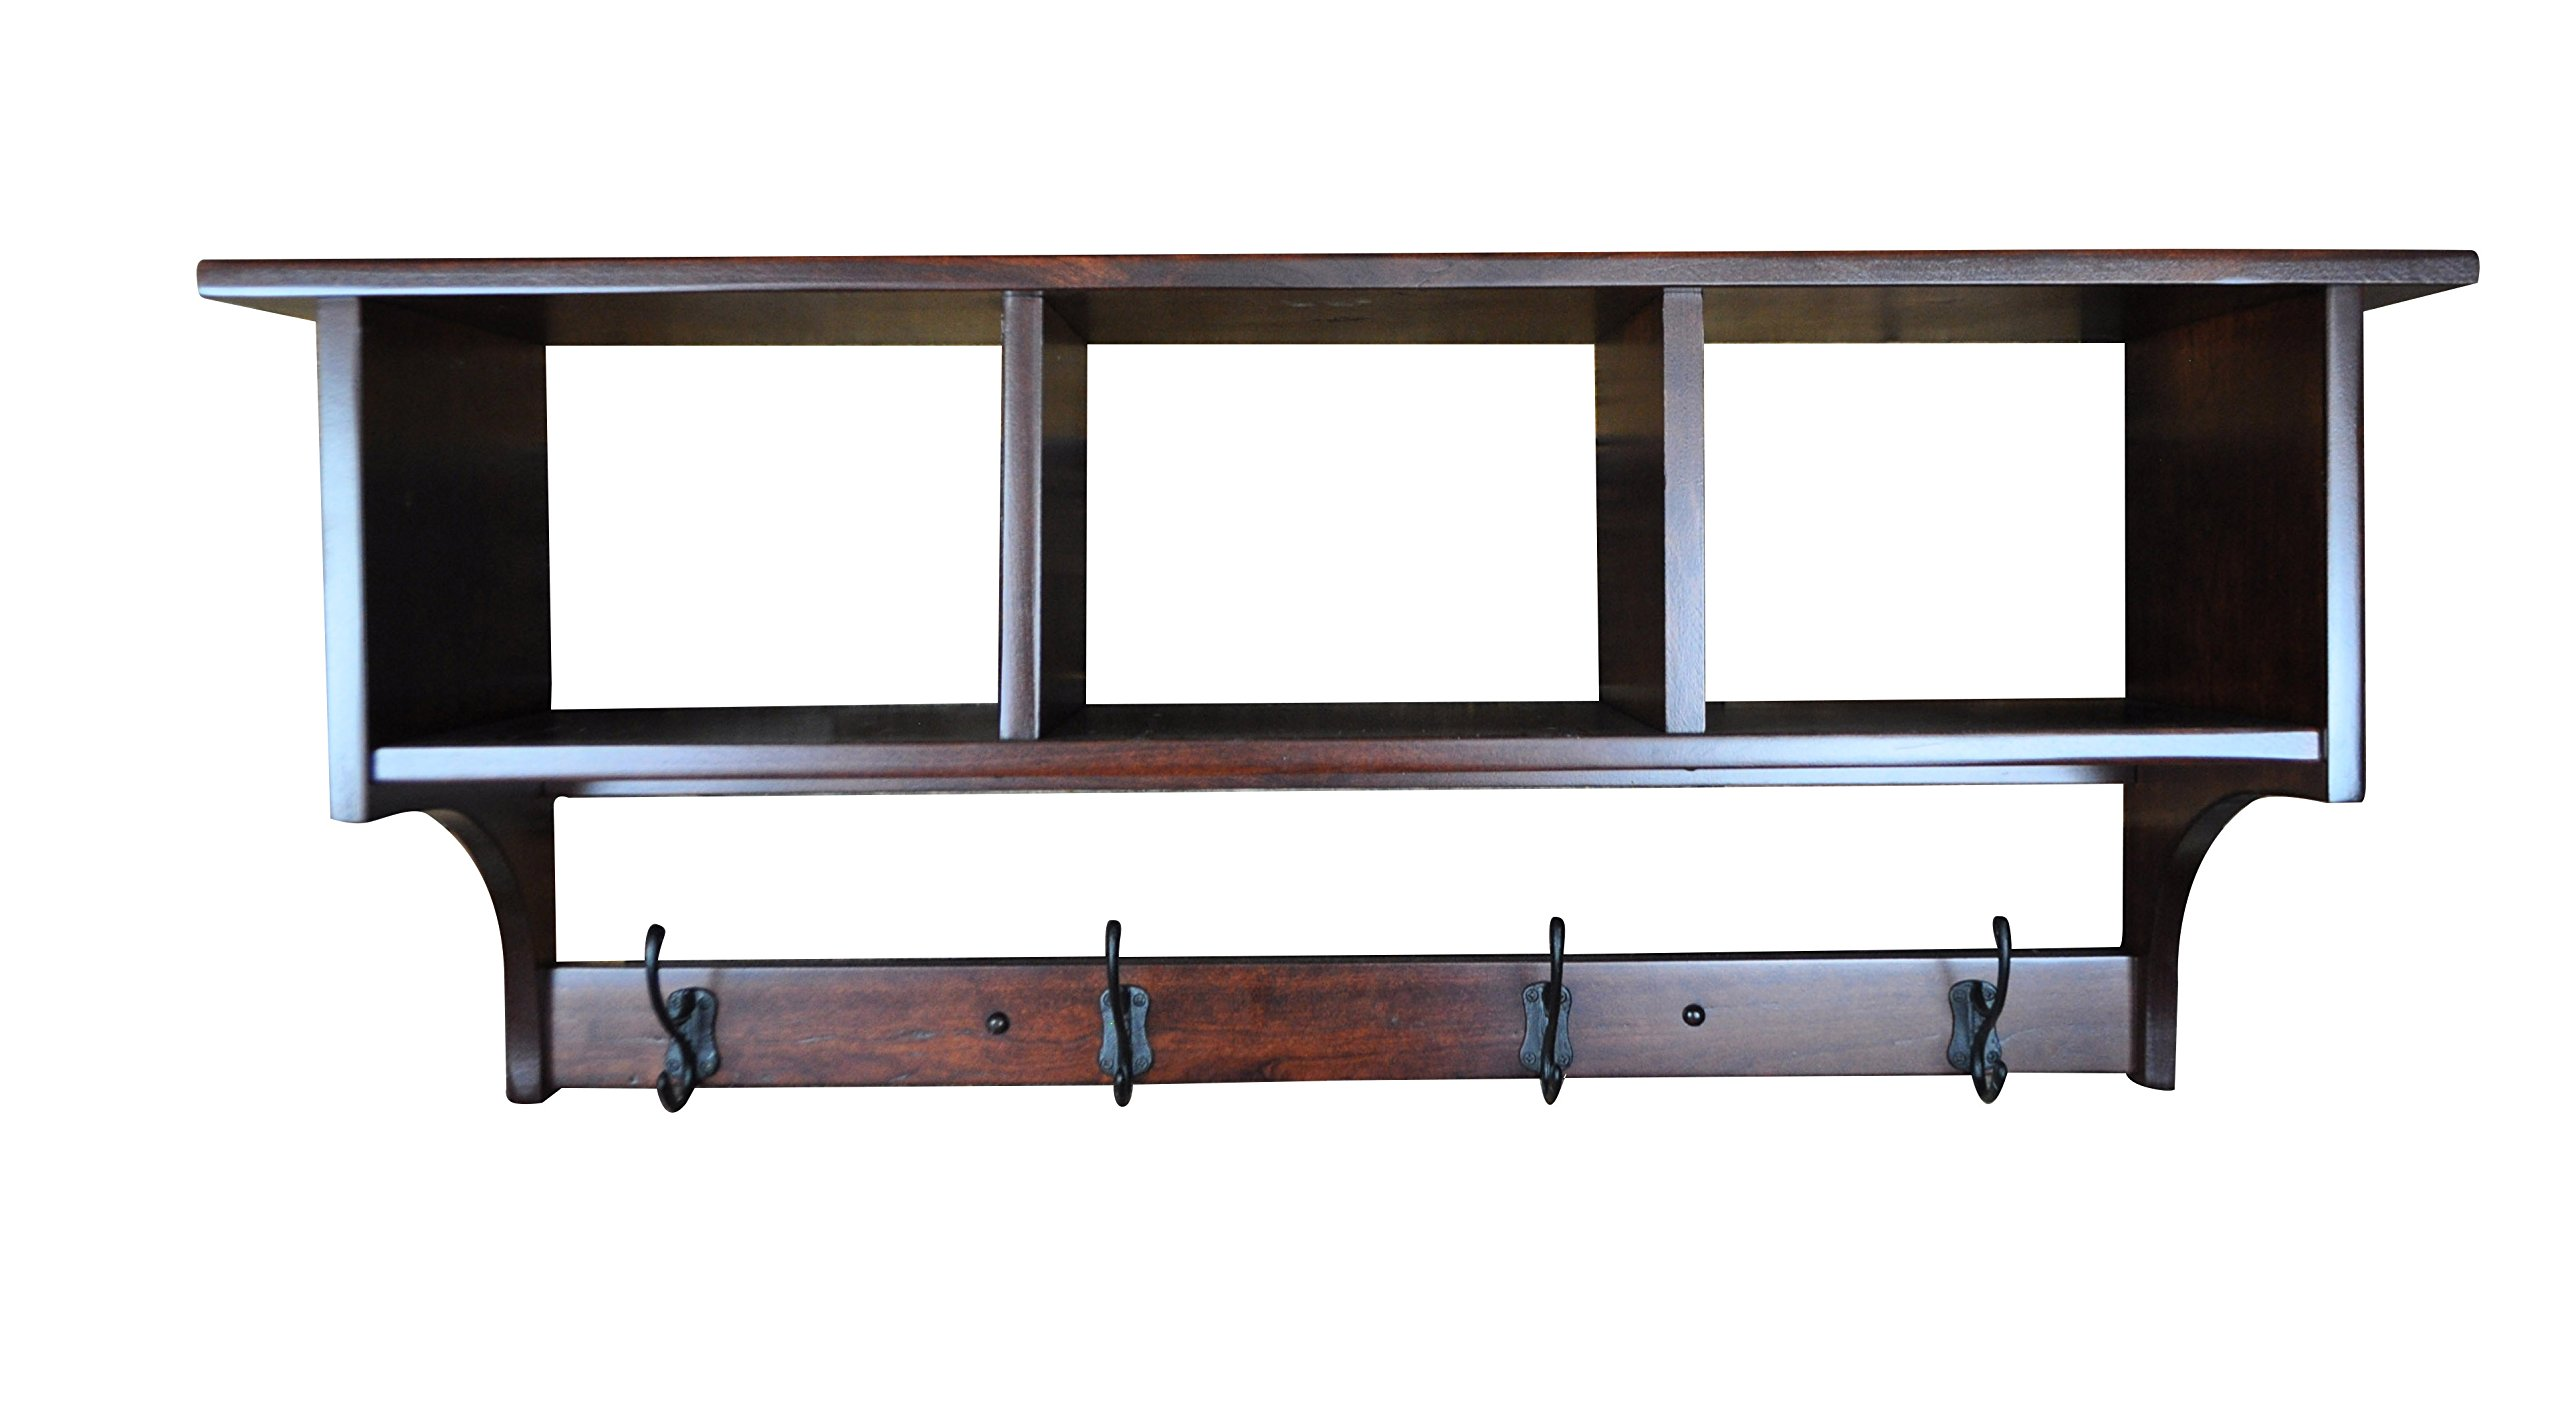 Shaker Cubby Coat Rack Shelf Wall Mounted – Custom Available - 4 Hook, Rustic Cherry Wood, Rich Cherry Stain by Hope Woodworking